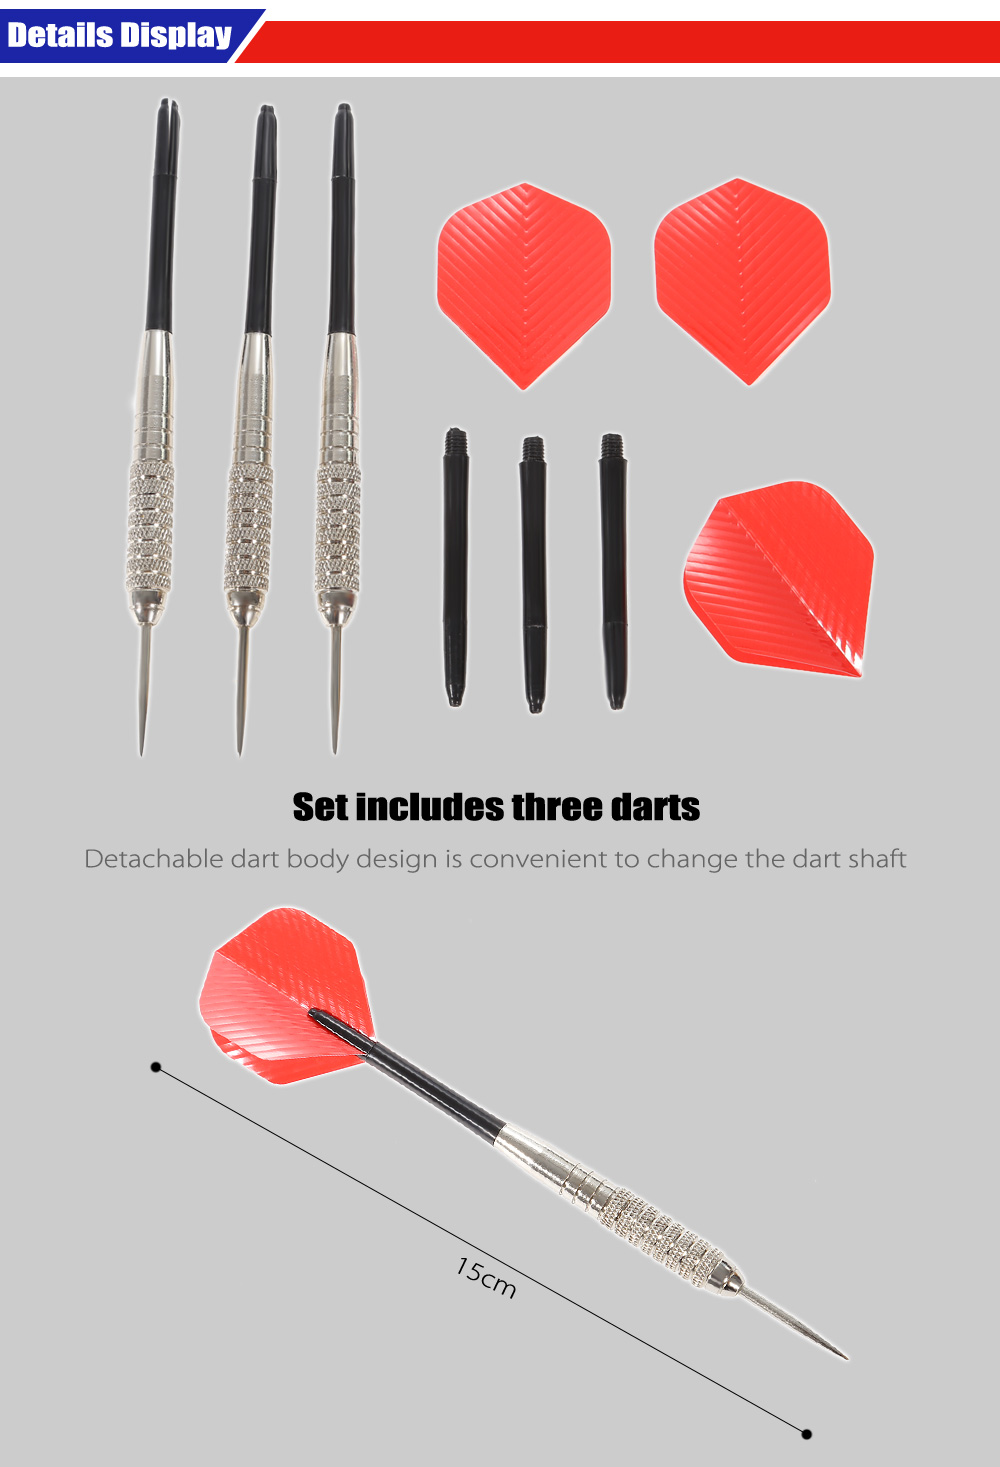 JOEREX JFT6623 3pcs Nickle Darts with Silver Plating in Blister Pack